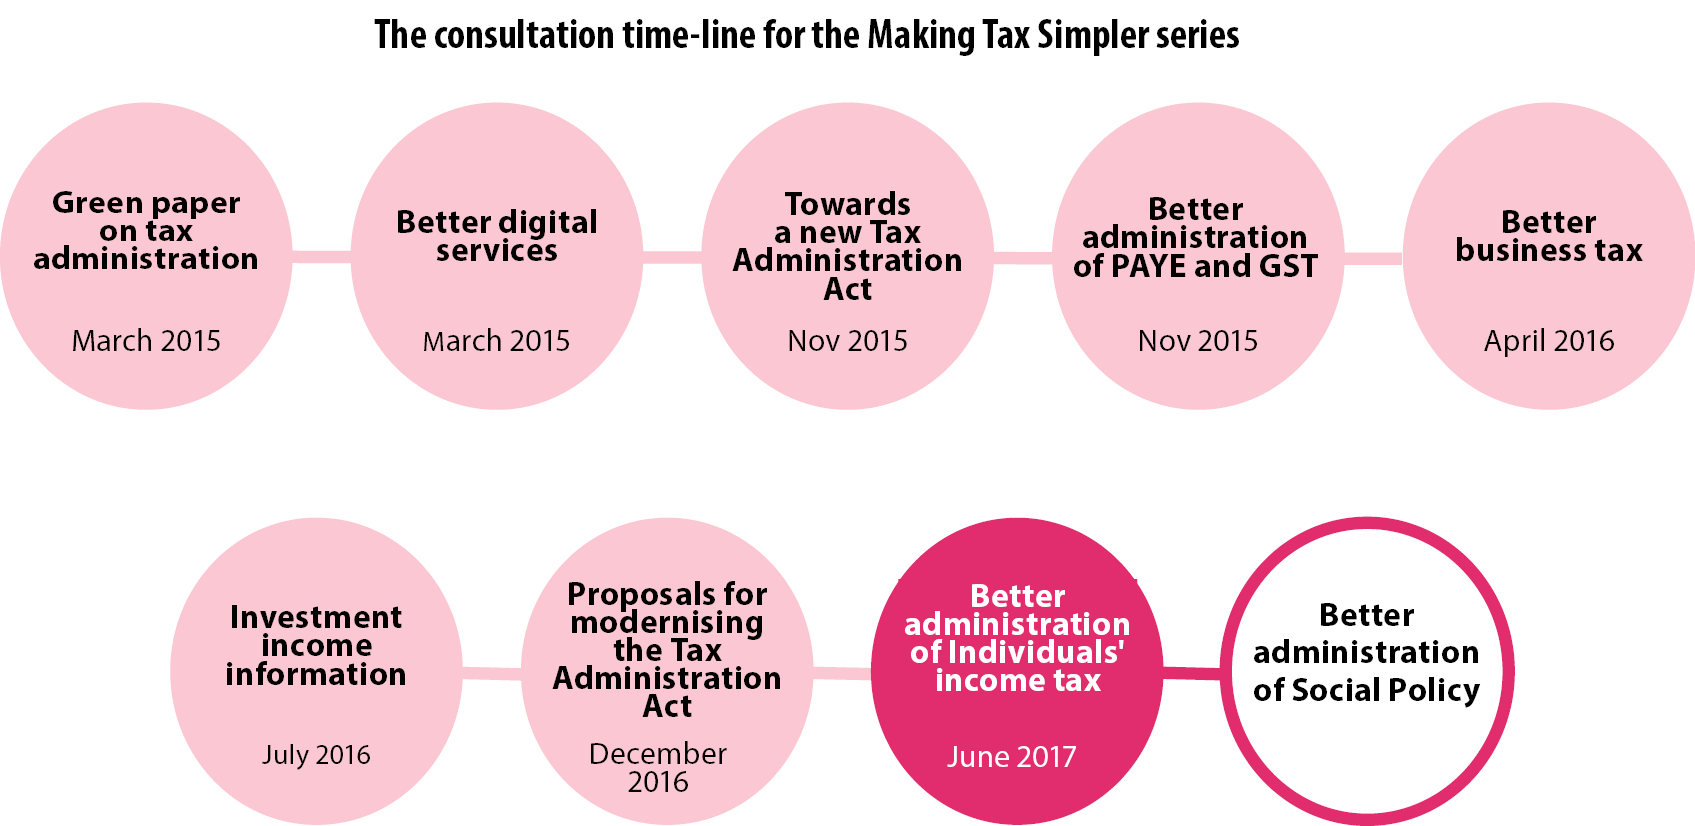 The consultation timeline for the Making Tax Simpler series